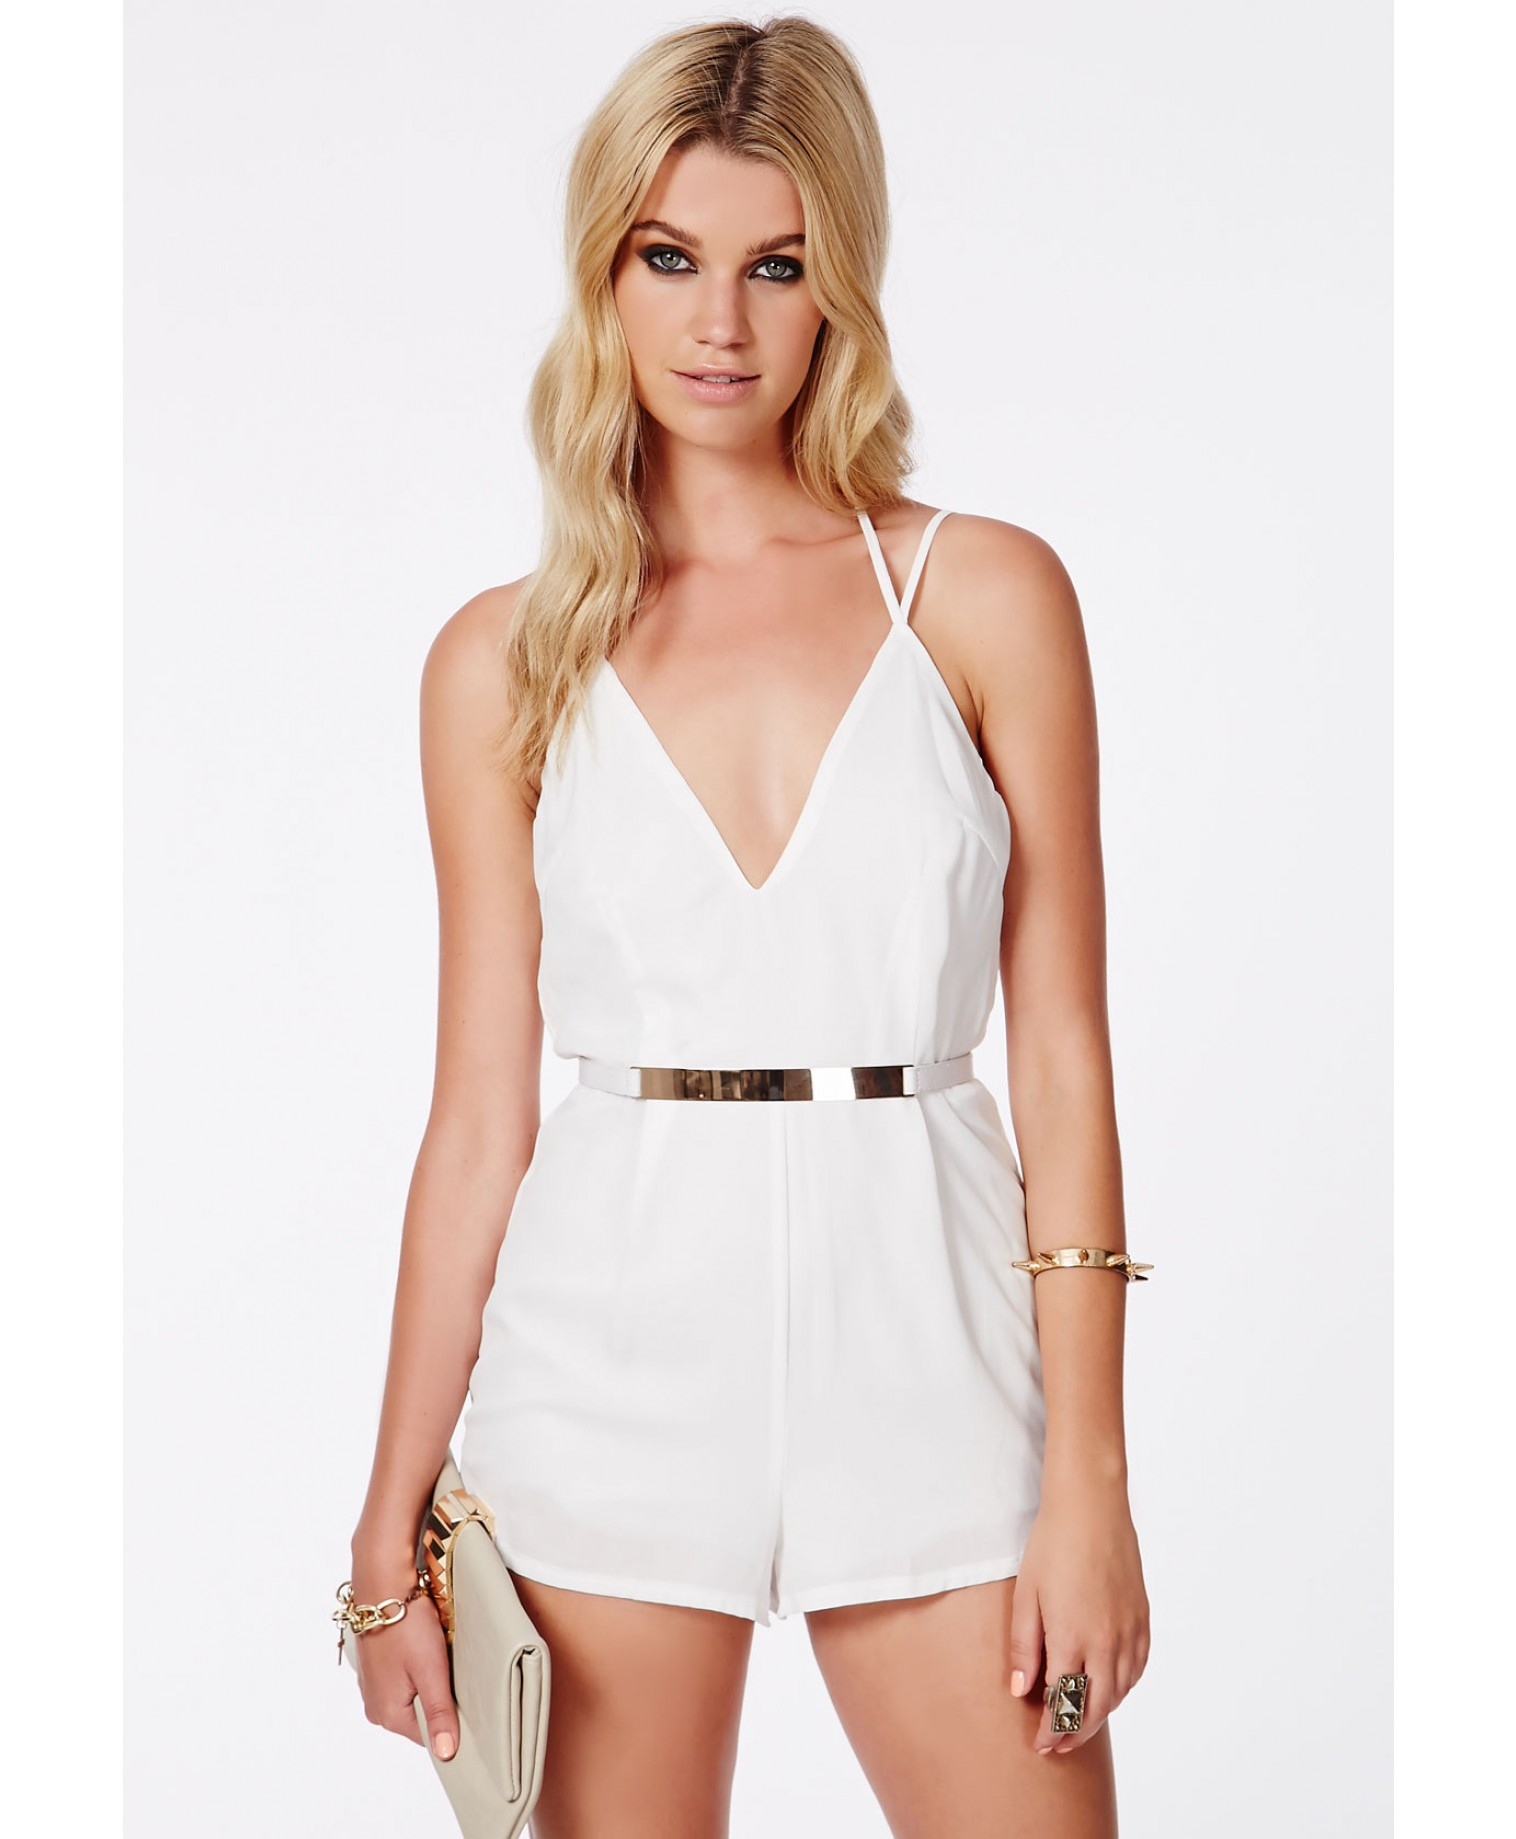 29fb4a98c742 Lyst - Missguided Lintley Chiffon Strappy Romper White in White